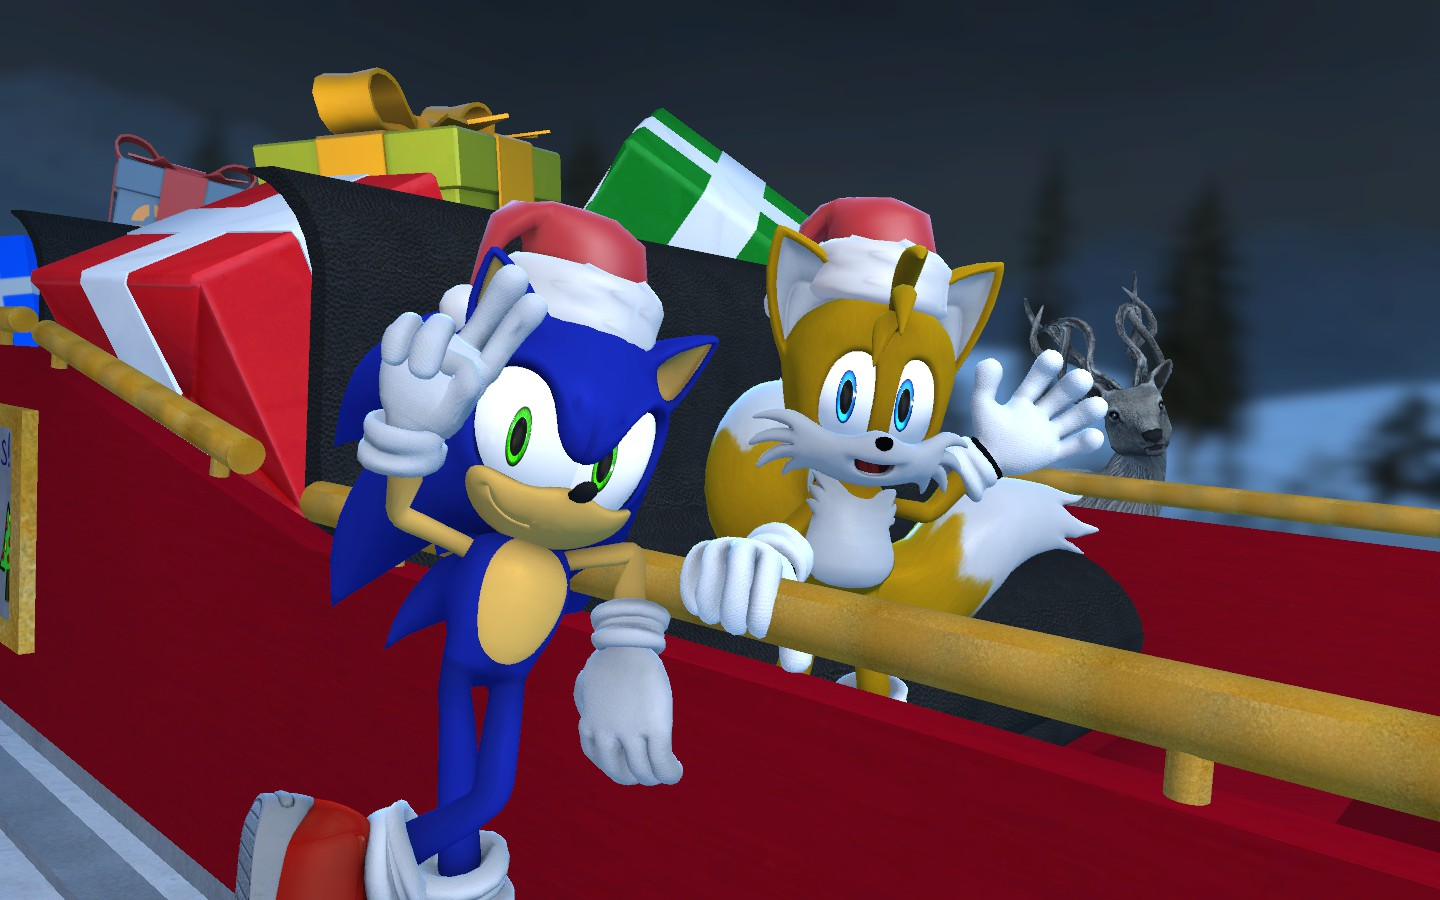 Merry Christmas 2012 by sonic1993